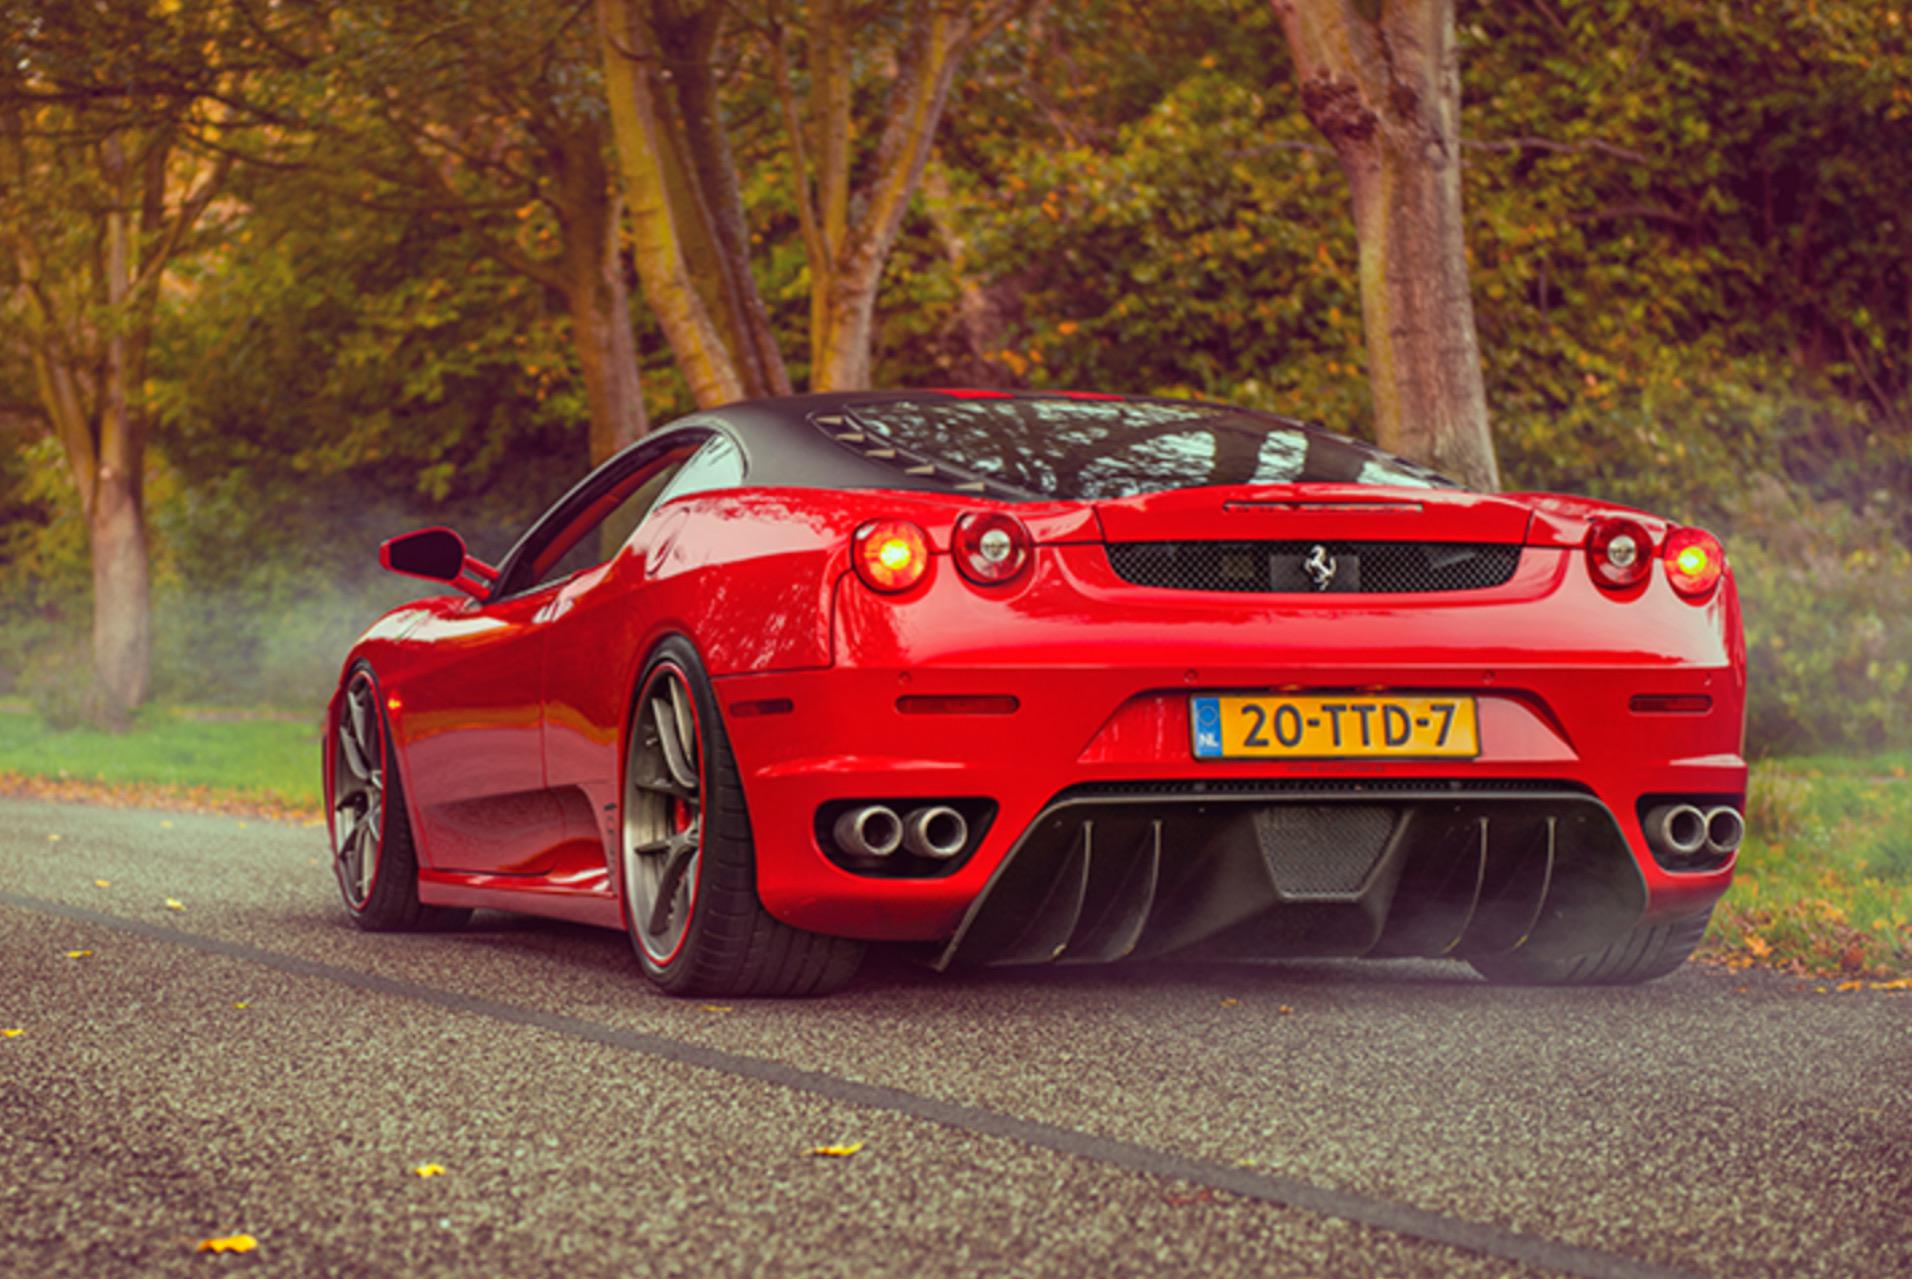 Gorgeous Red Ferrari F430